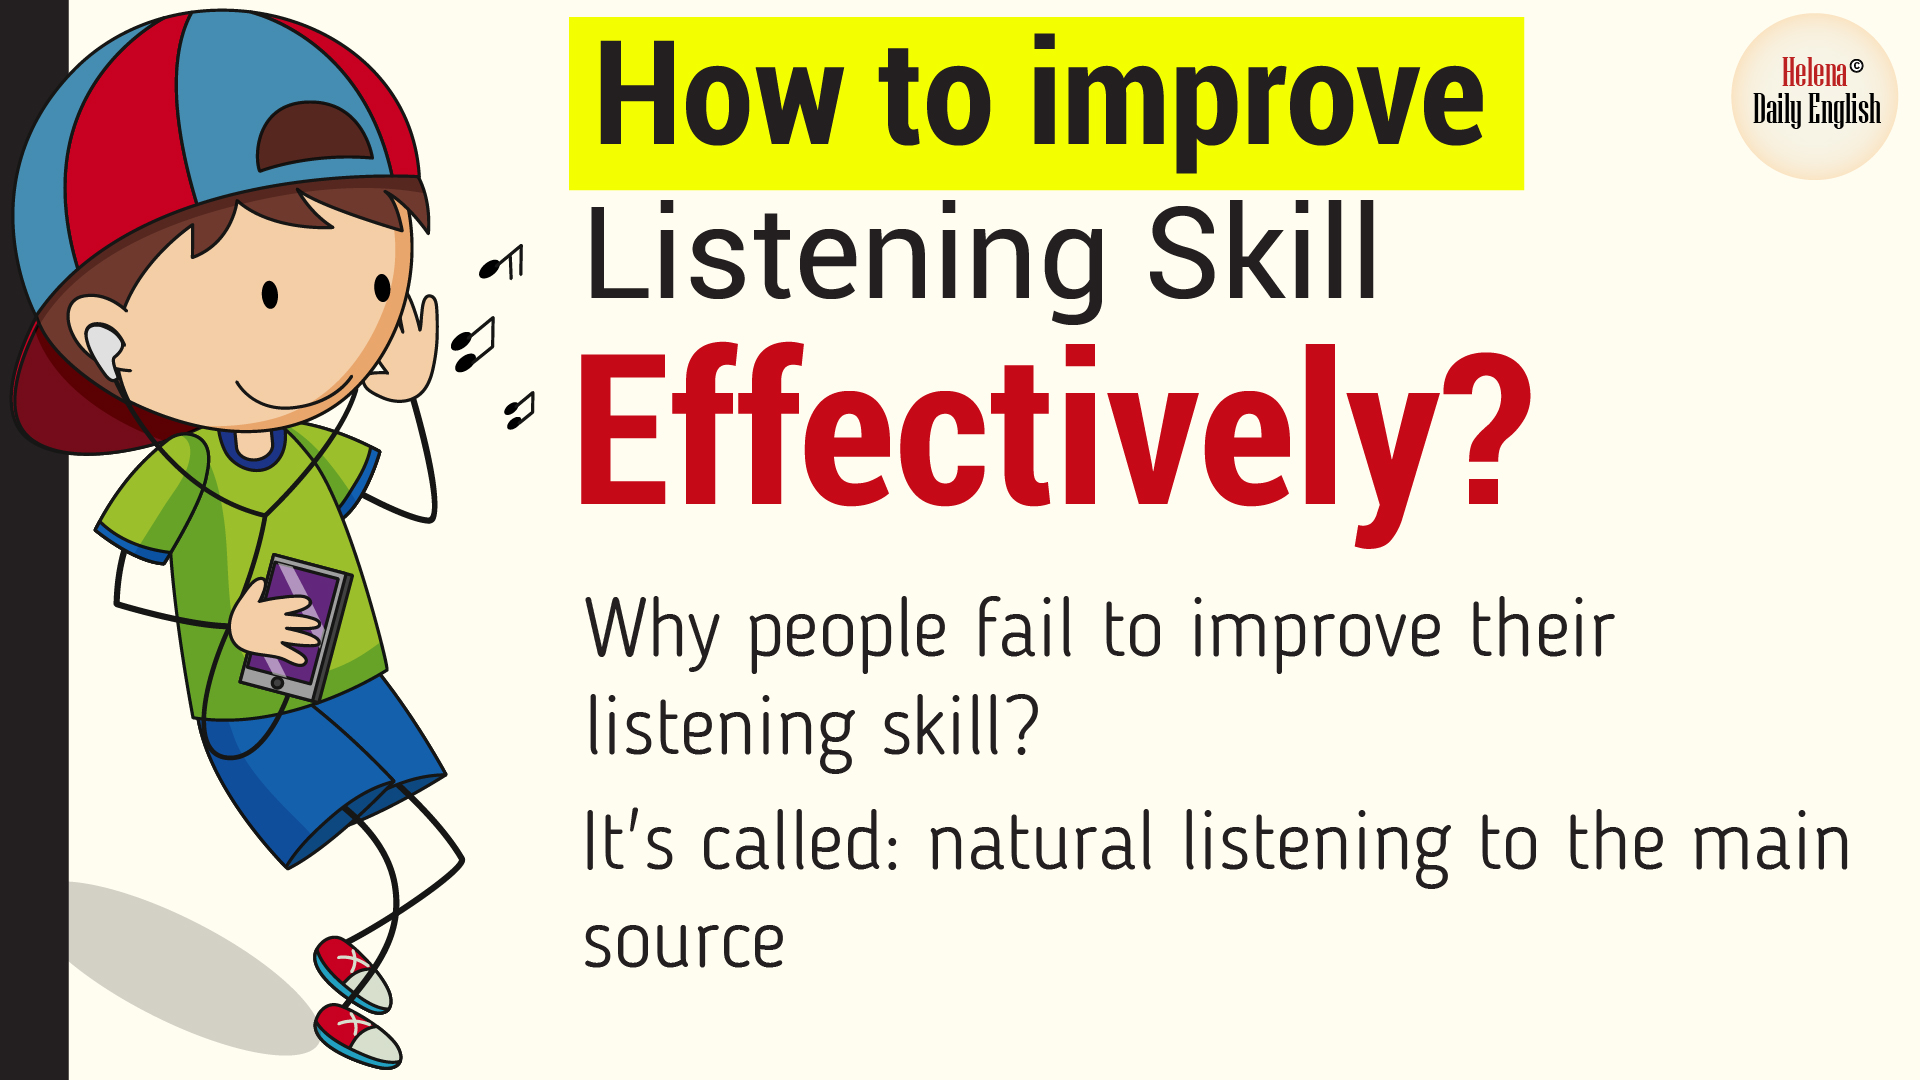 How To Improve Listening Skill Effectively Without